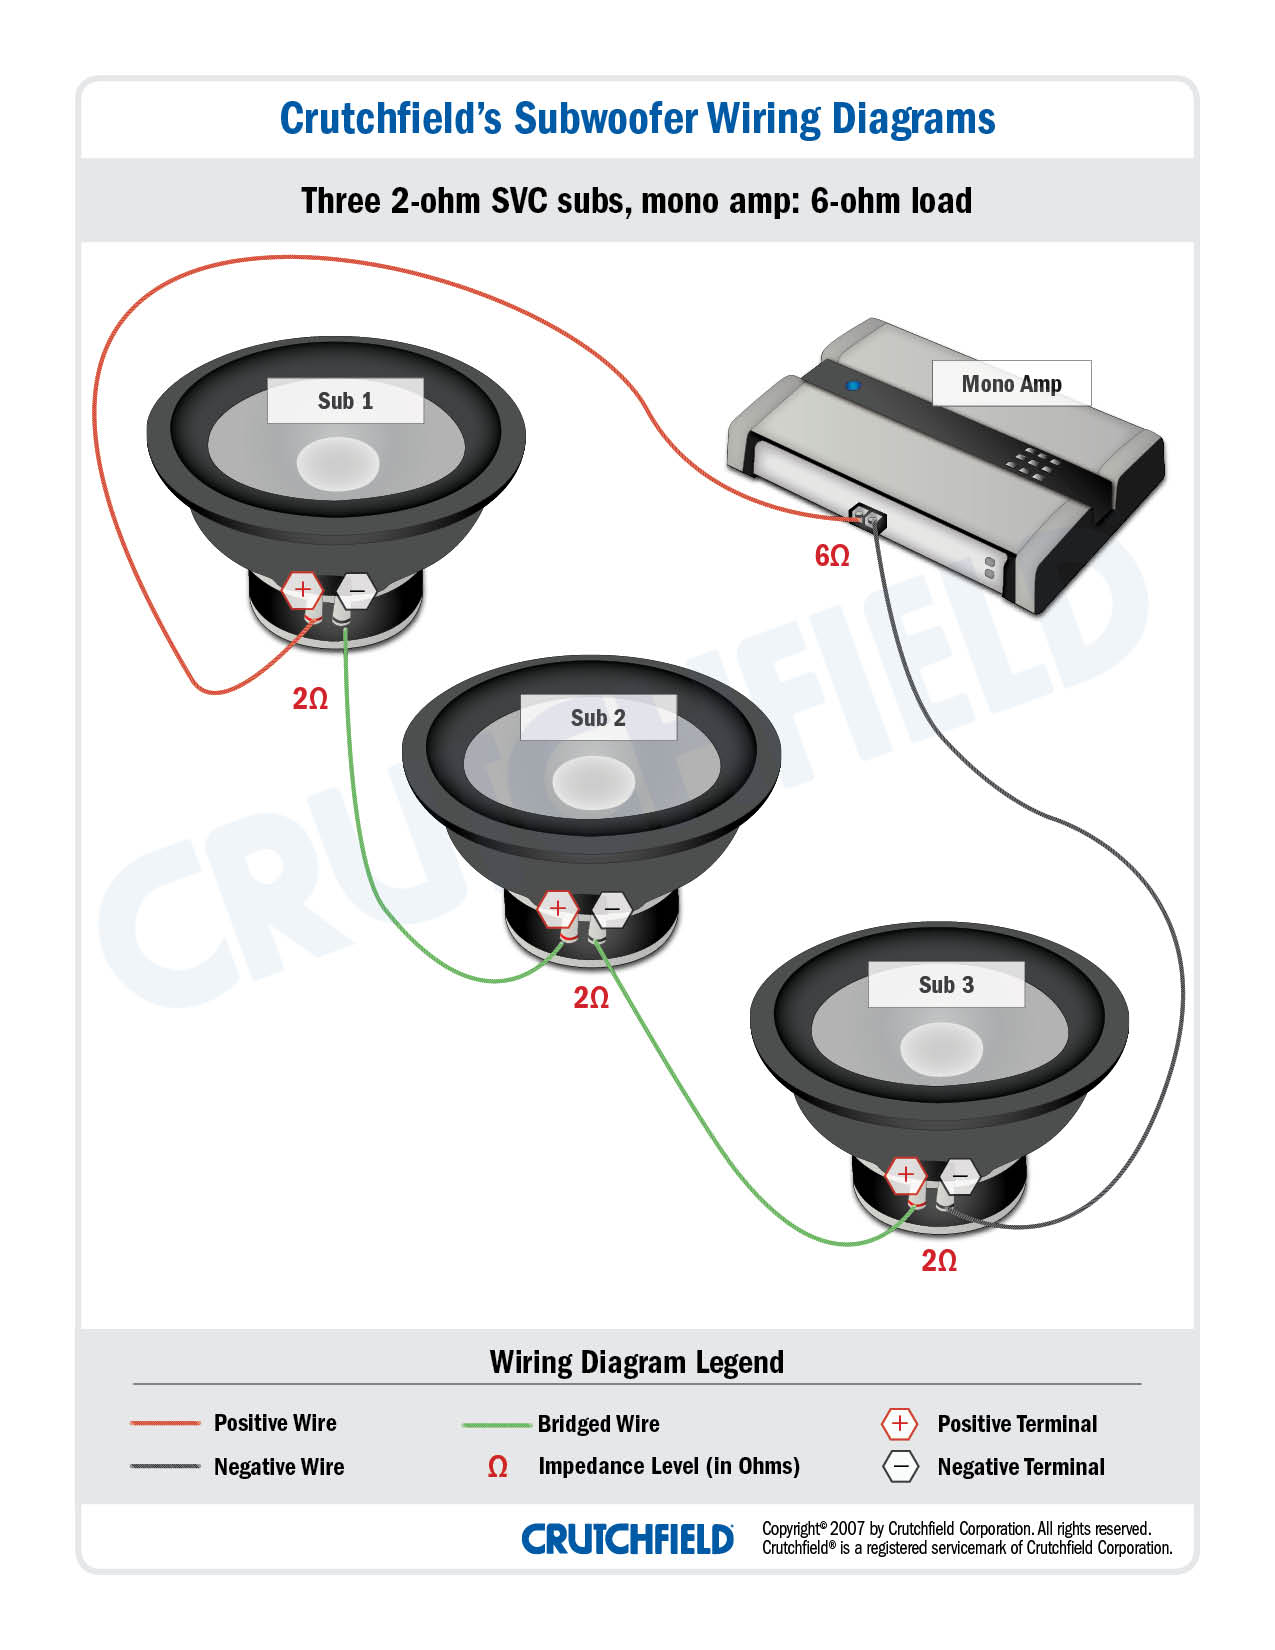 Subwoofer Wiring Diagrams How To Wire Your Subs Diagram Series This Shows Three Svc Get Wired In Case On The Captions Change 2s 4s And 6 A 12